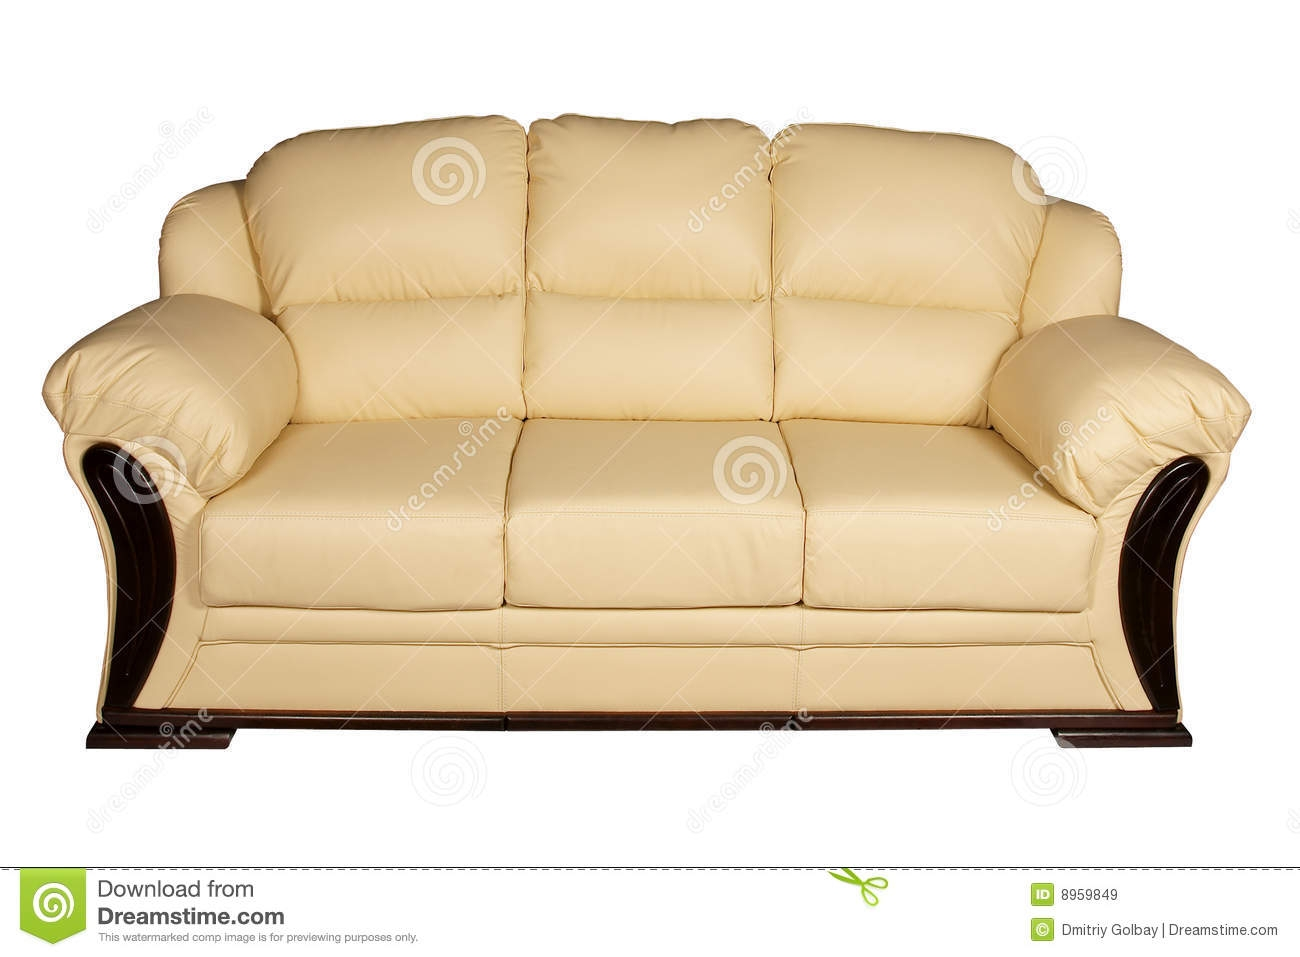 Sofas Center Cream Colored Leather Sofa Alluring Jpg Home Throughout Cream Colored Sofas (View 9 of 15)